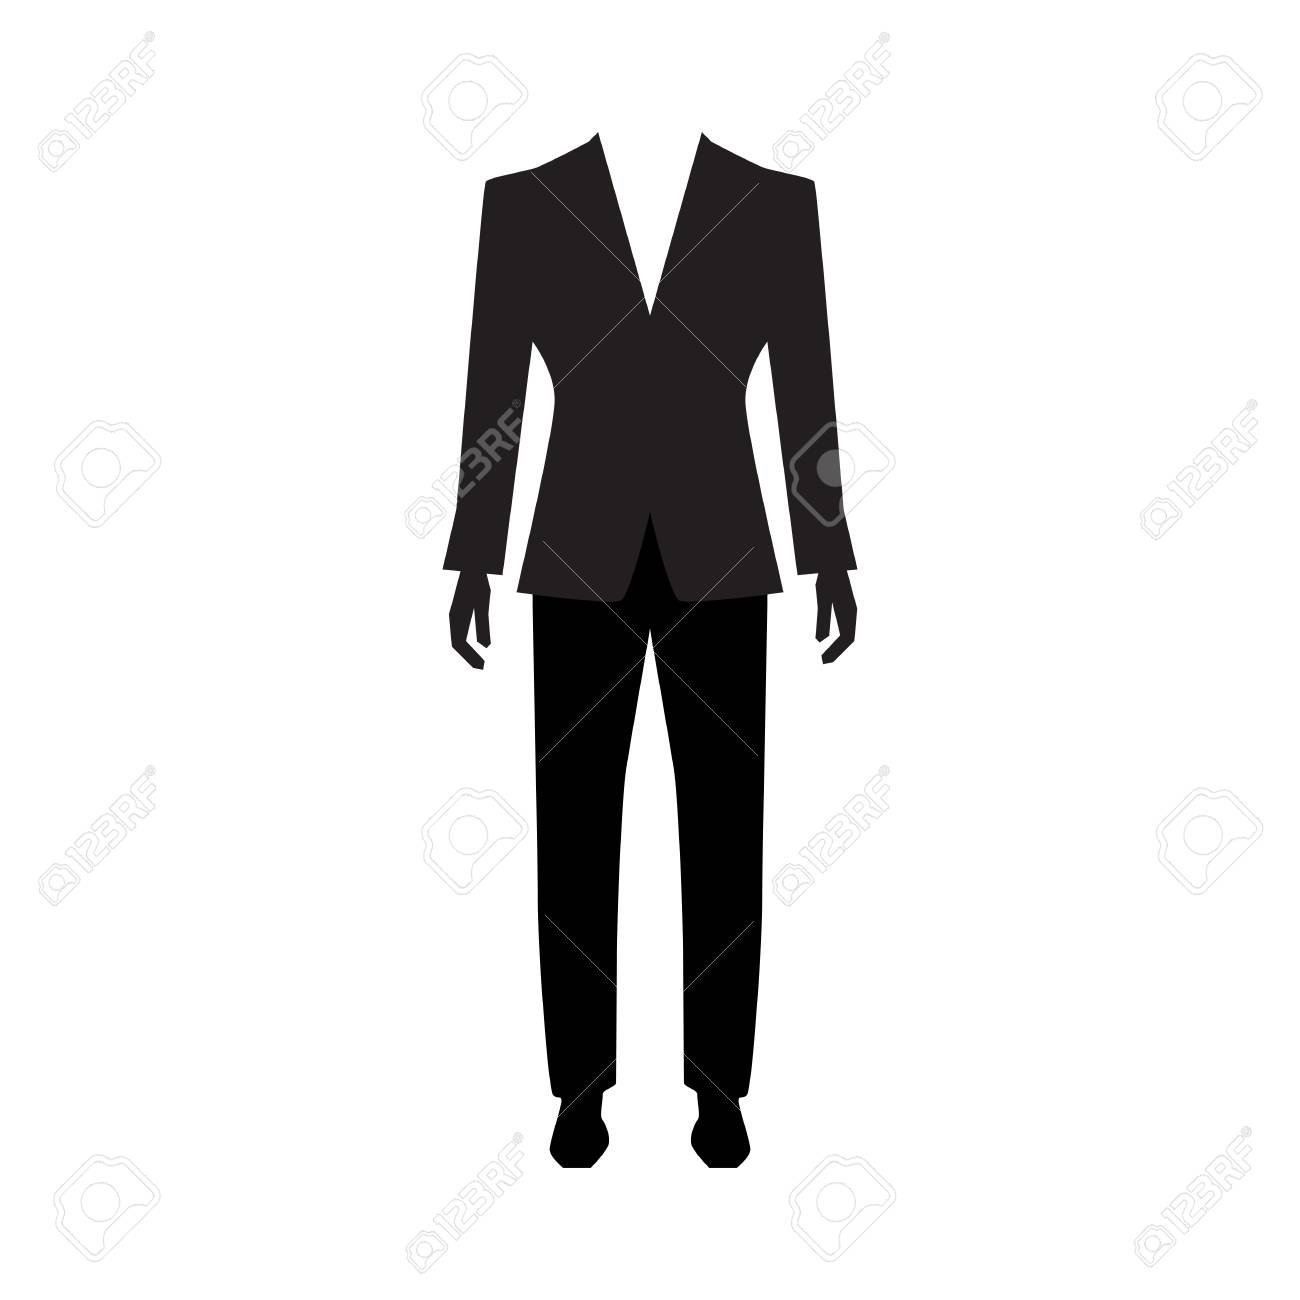 Man suit icon isolated on white background. Men formal suit vector..